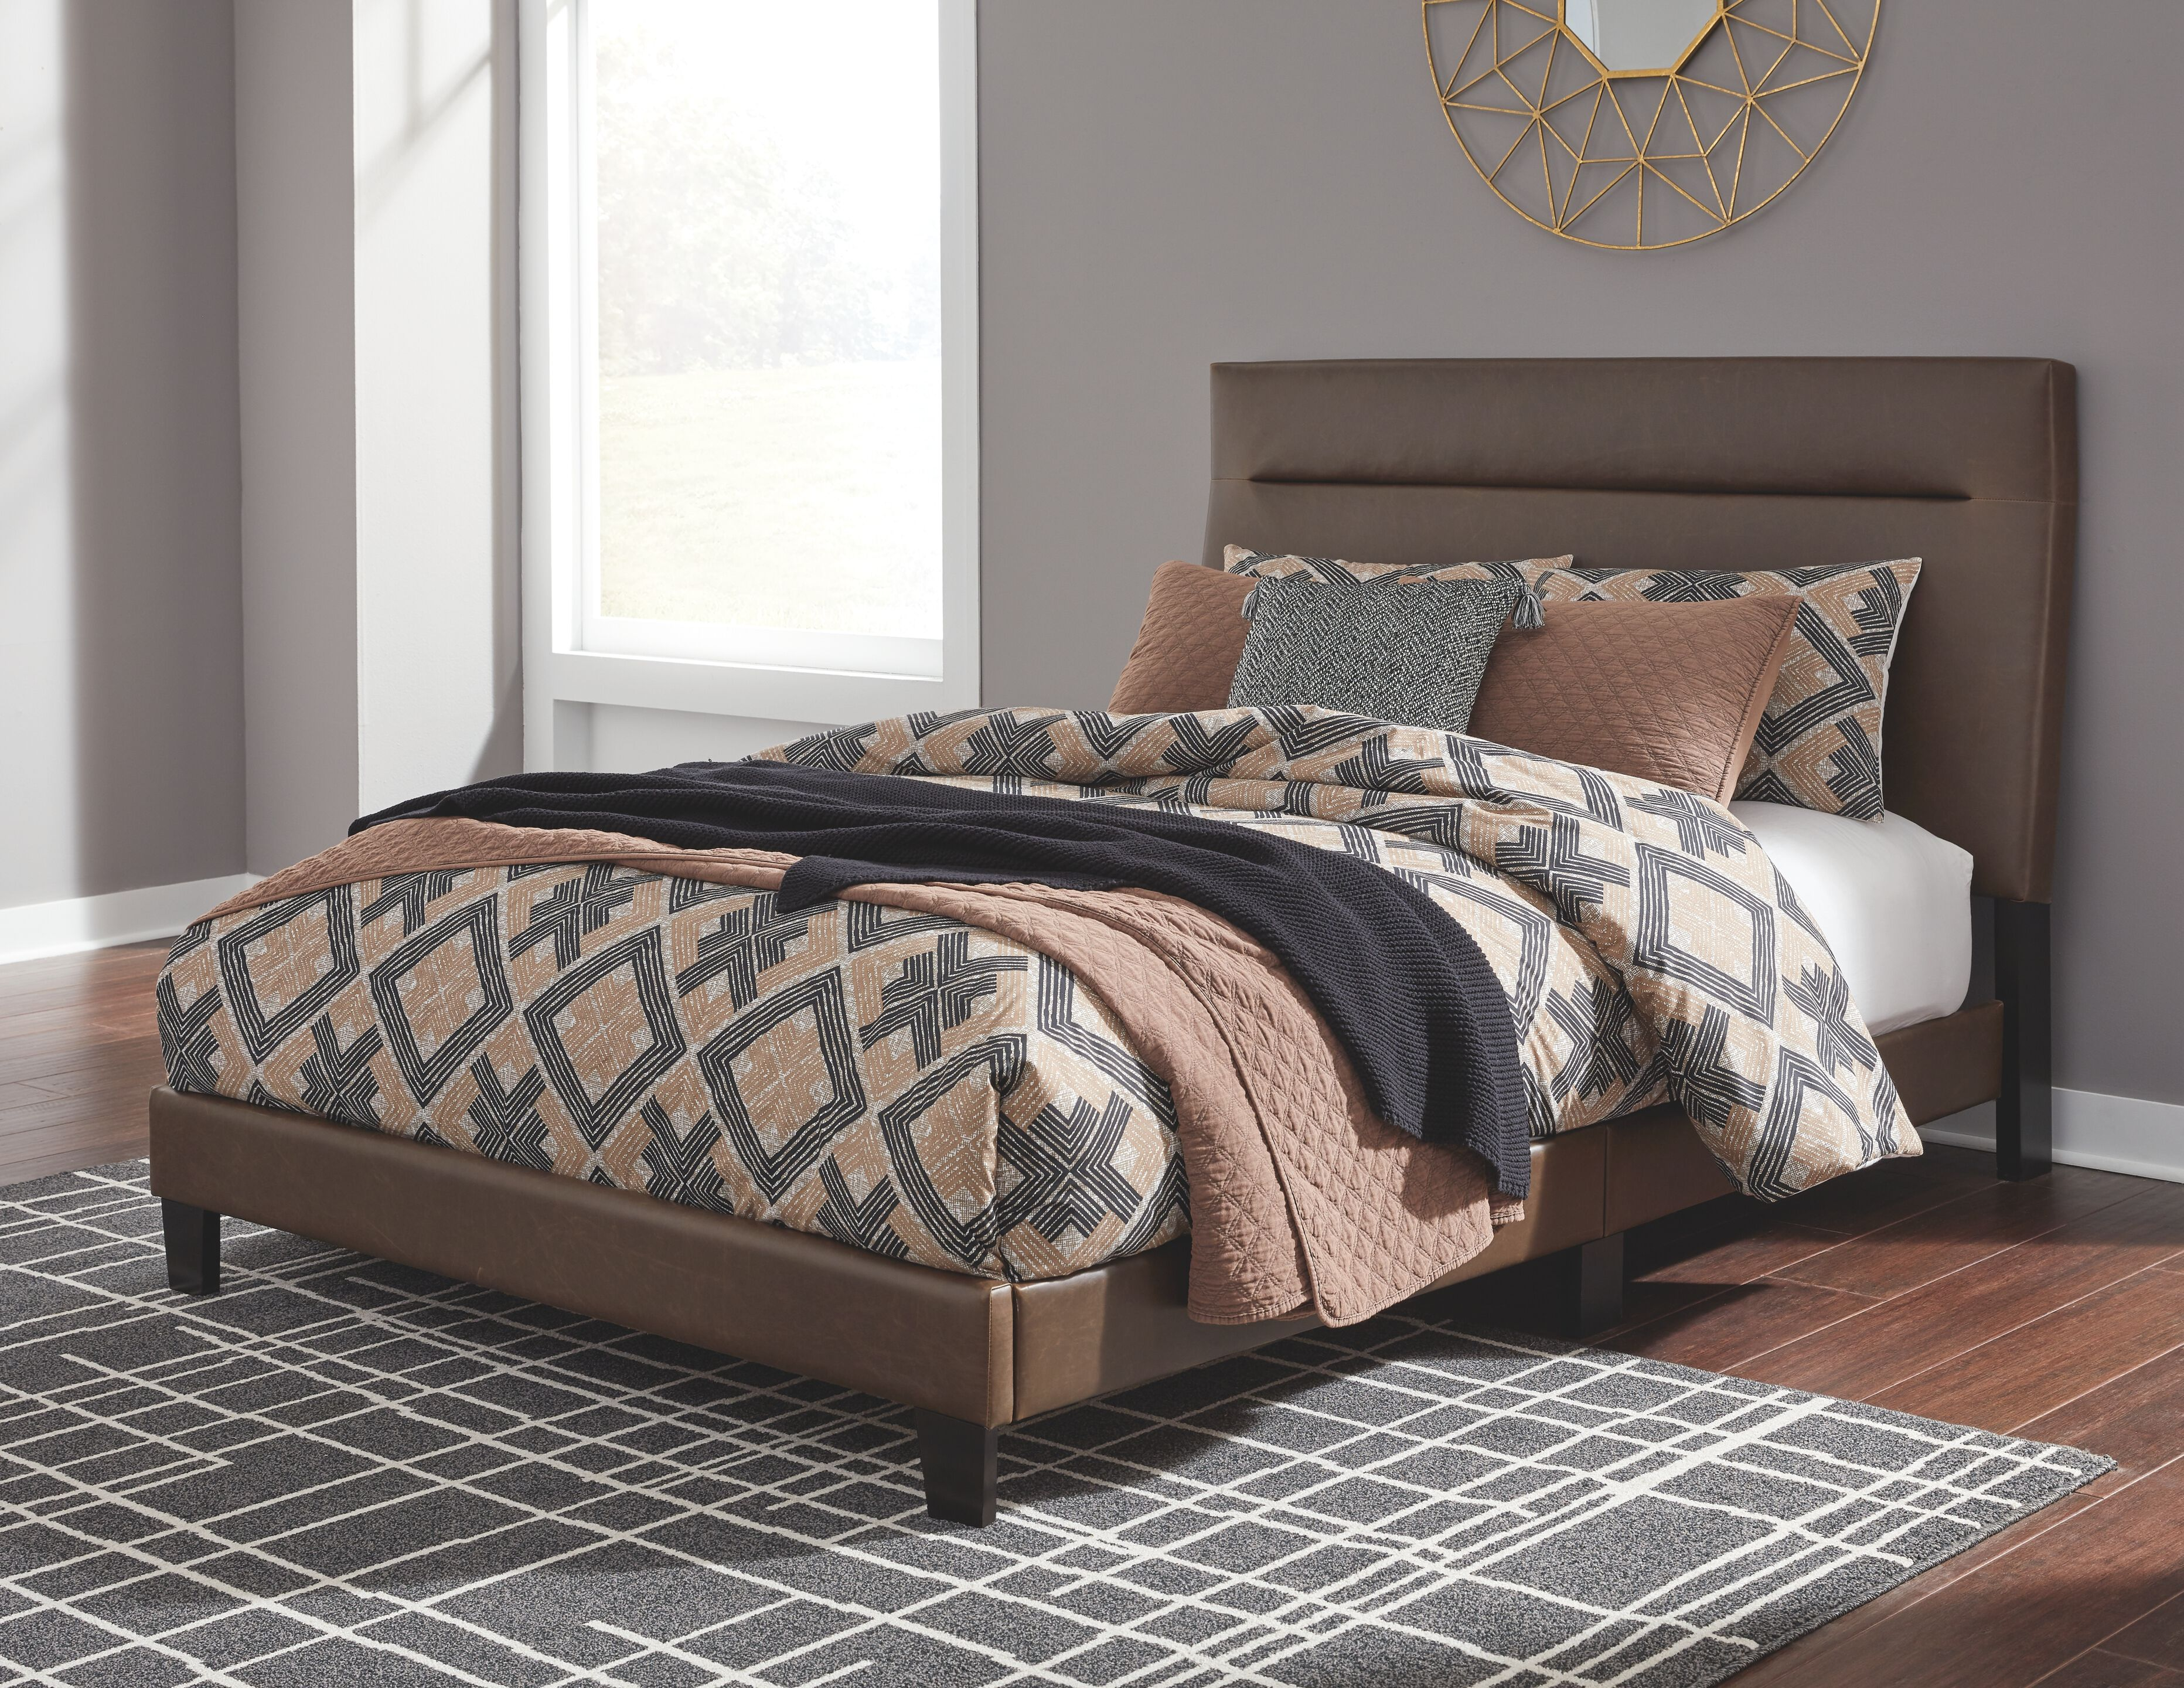 Adelloni Brown Queen Upholstered Headboard Footboard Roll Slats Mathis Brothers Furniture